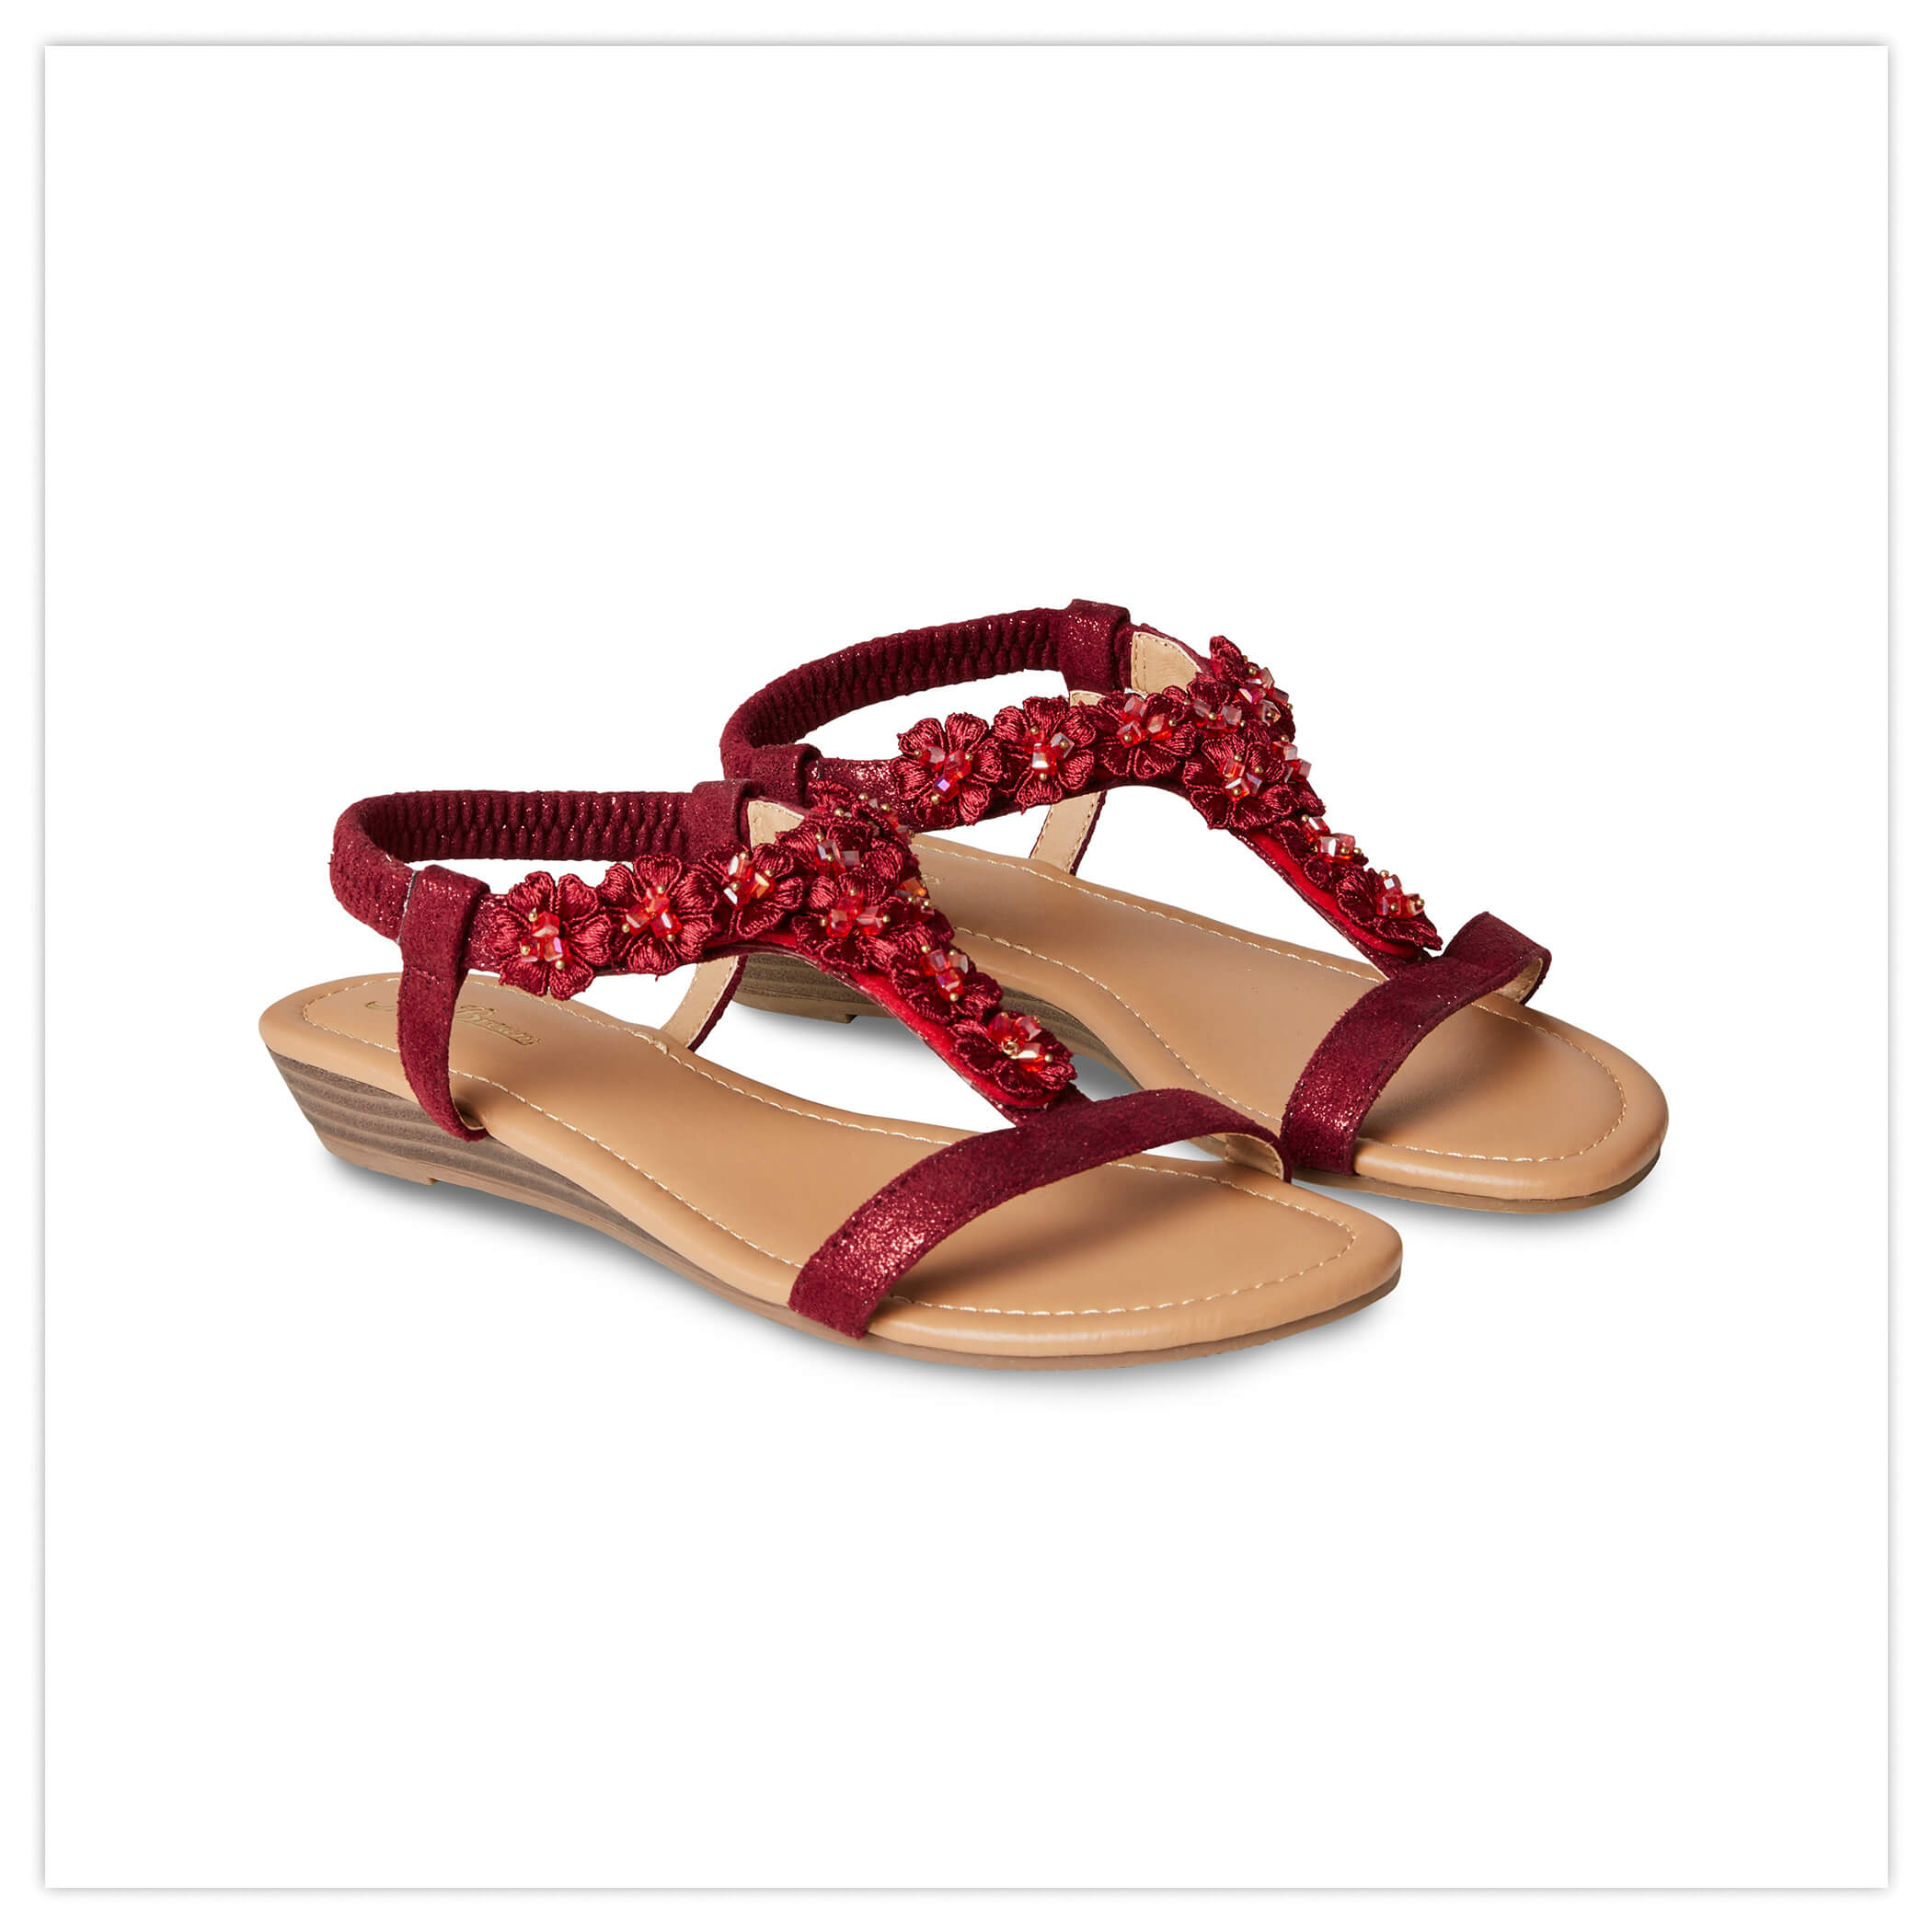 TURNING HEADS SANDALS